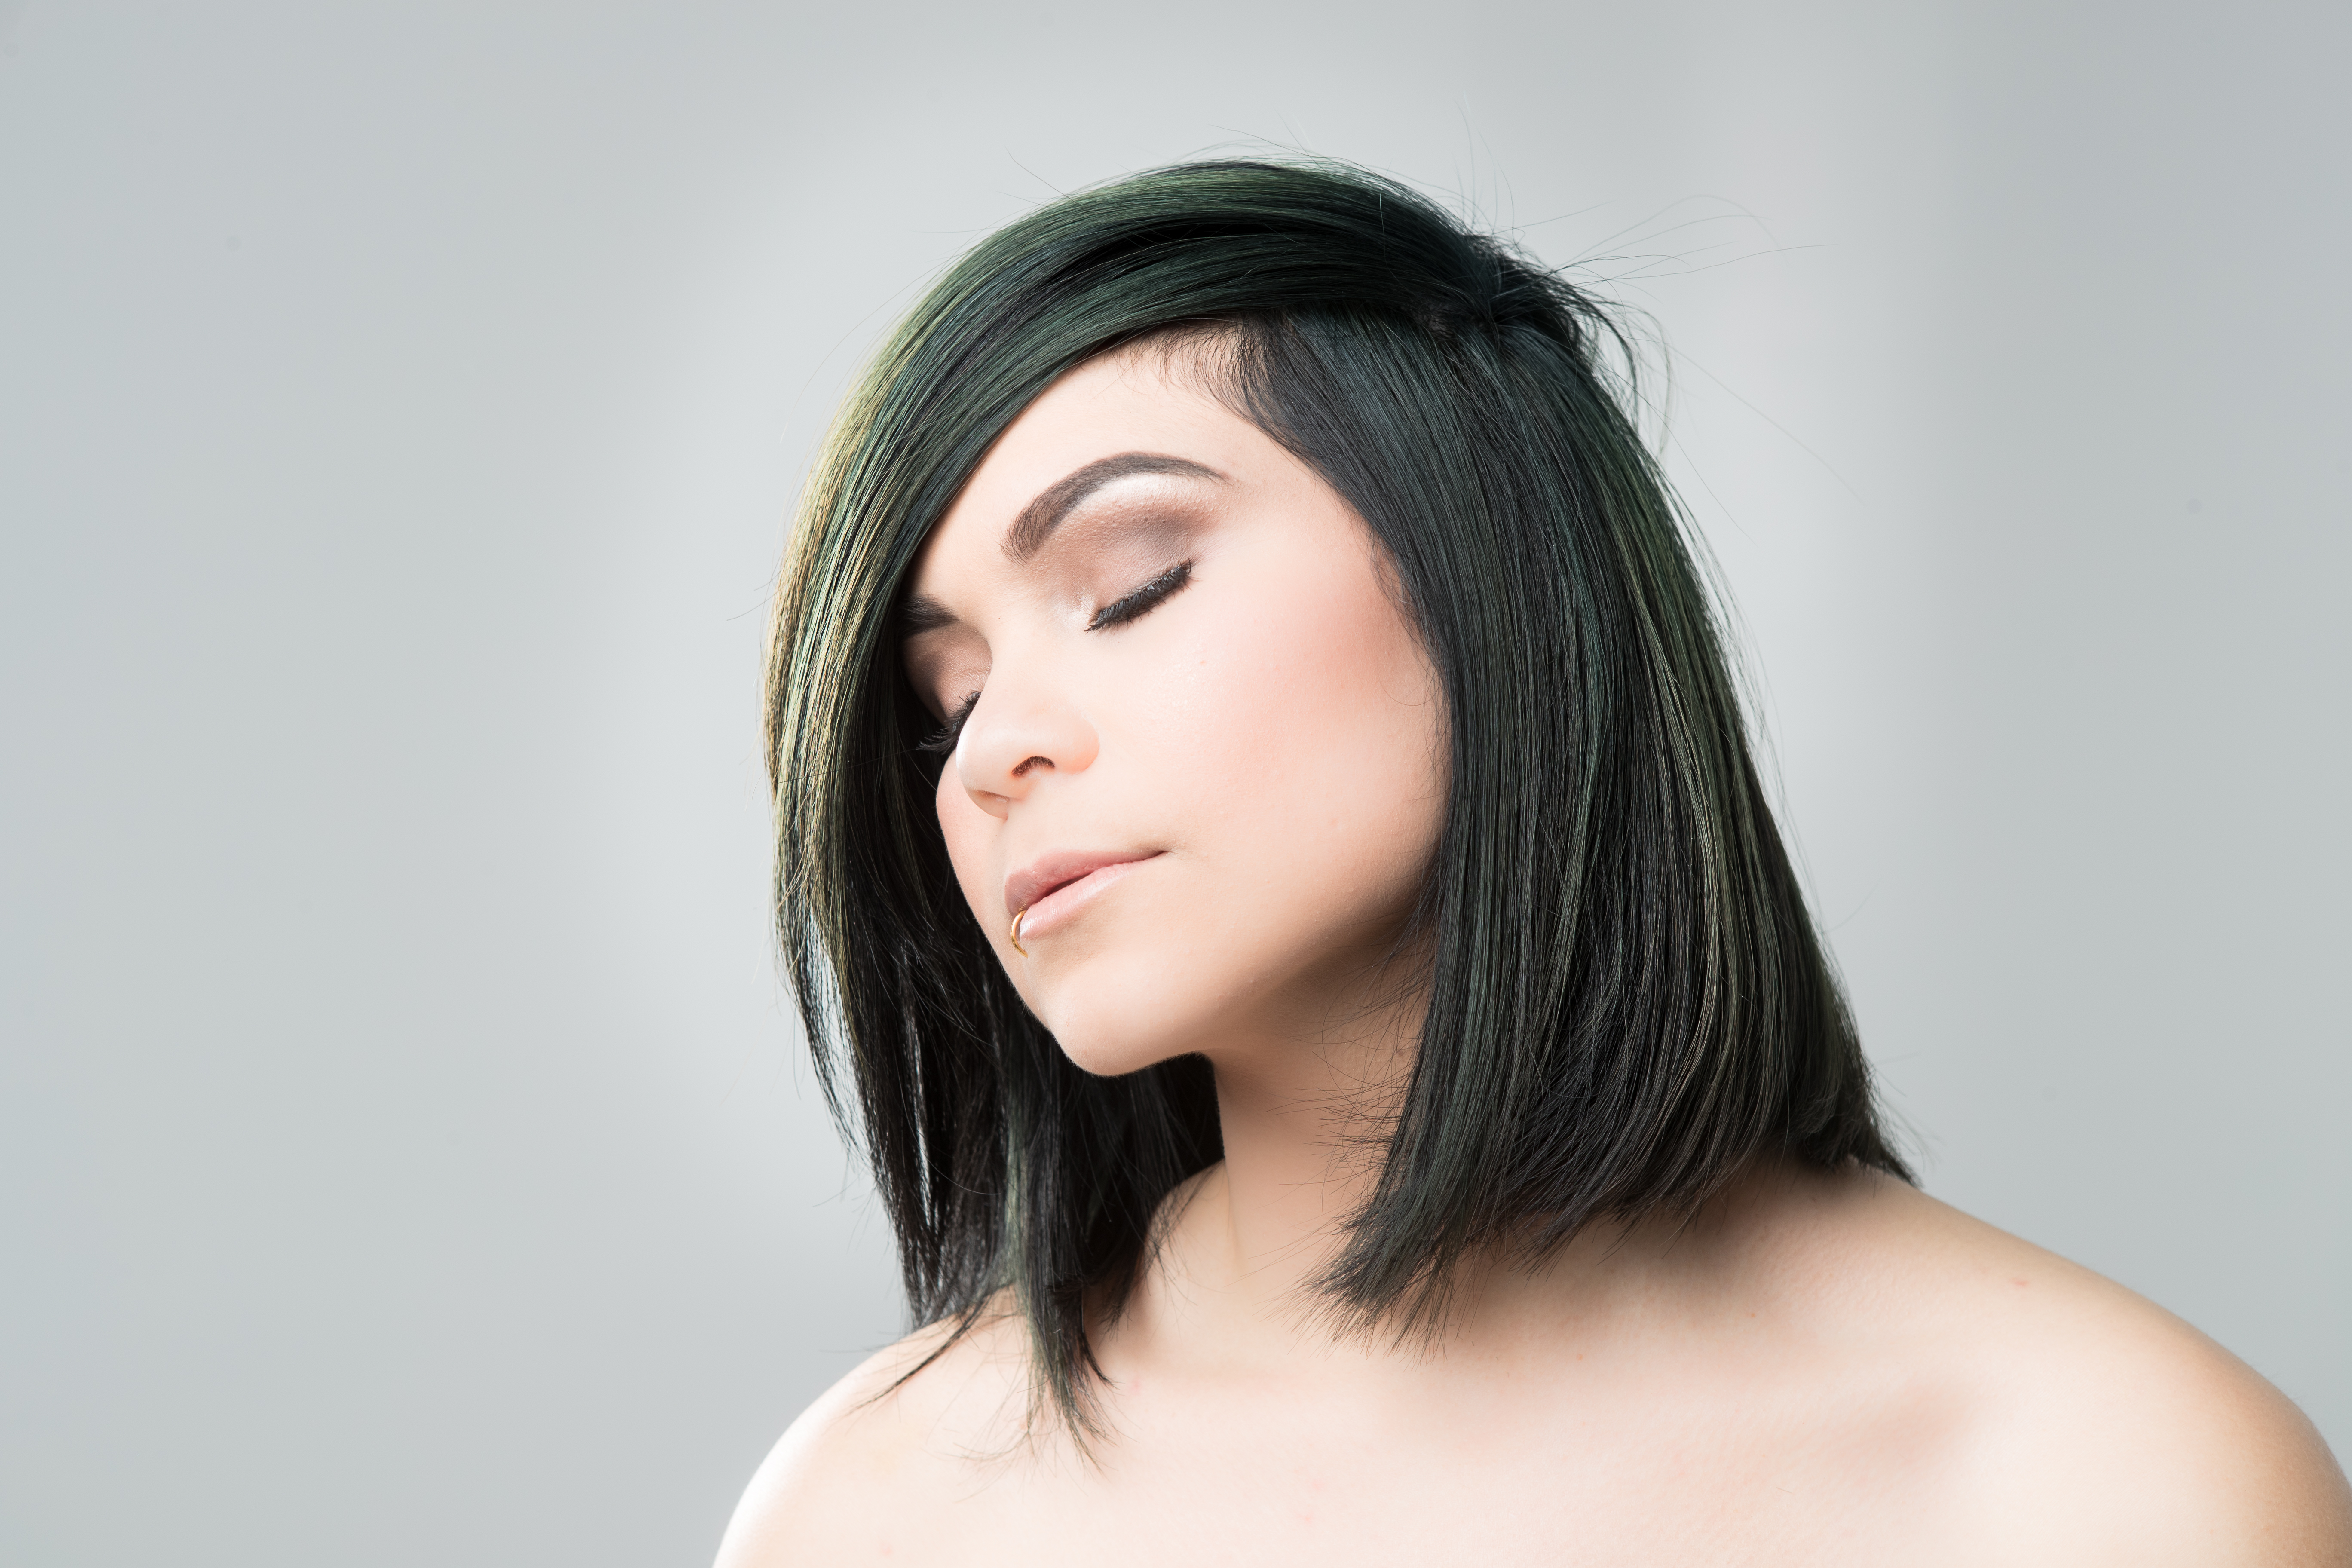 Model showing a shoulder-length bob with a dark forest-green color.